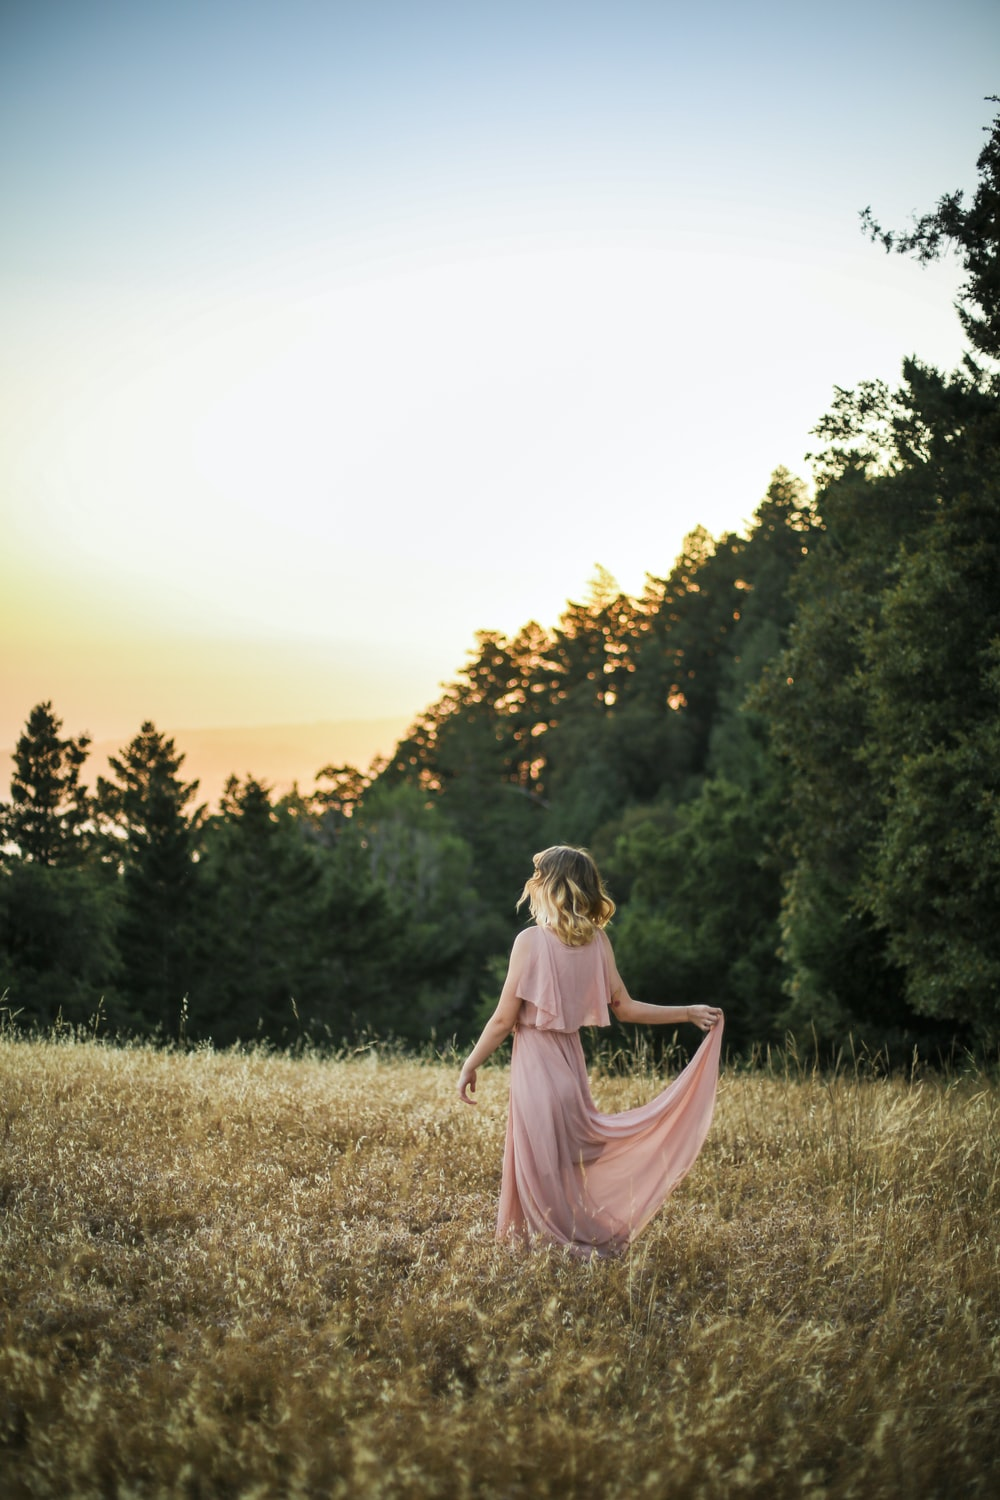 woman in pink dress standing on brown grass field during daytime